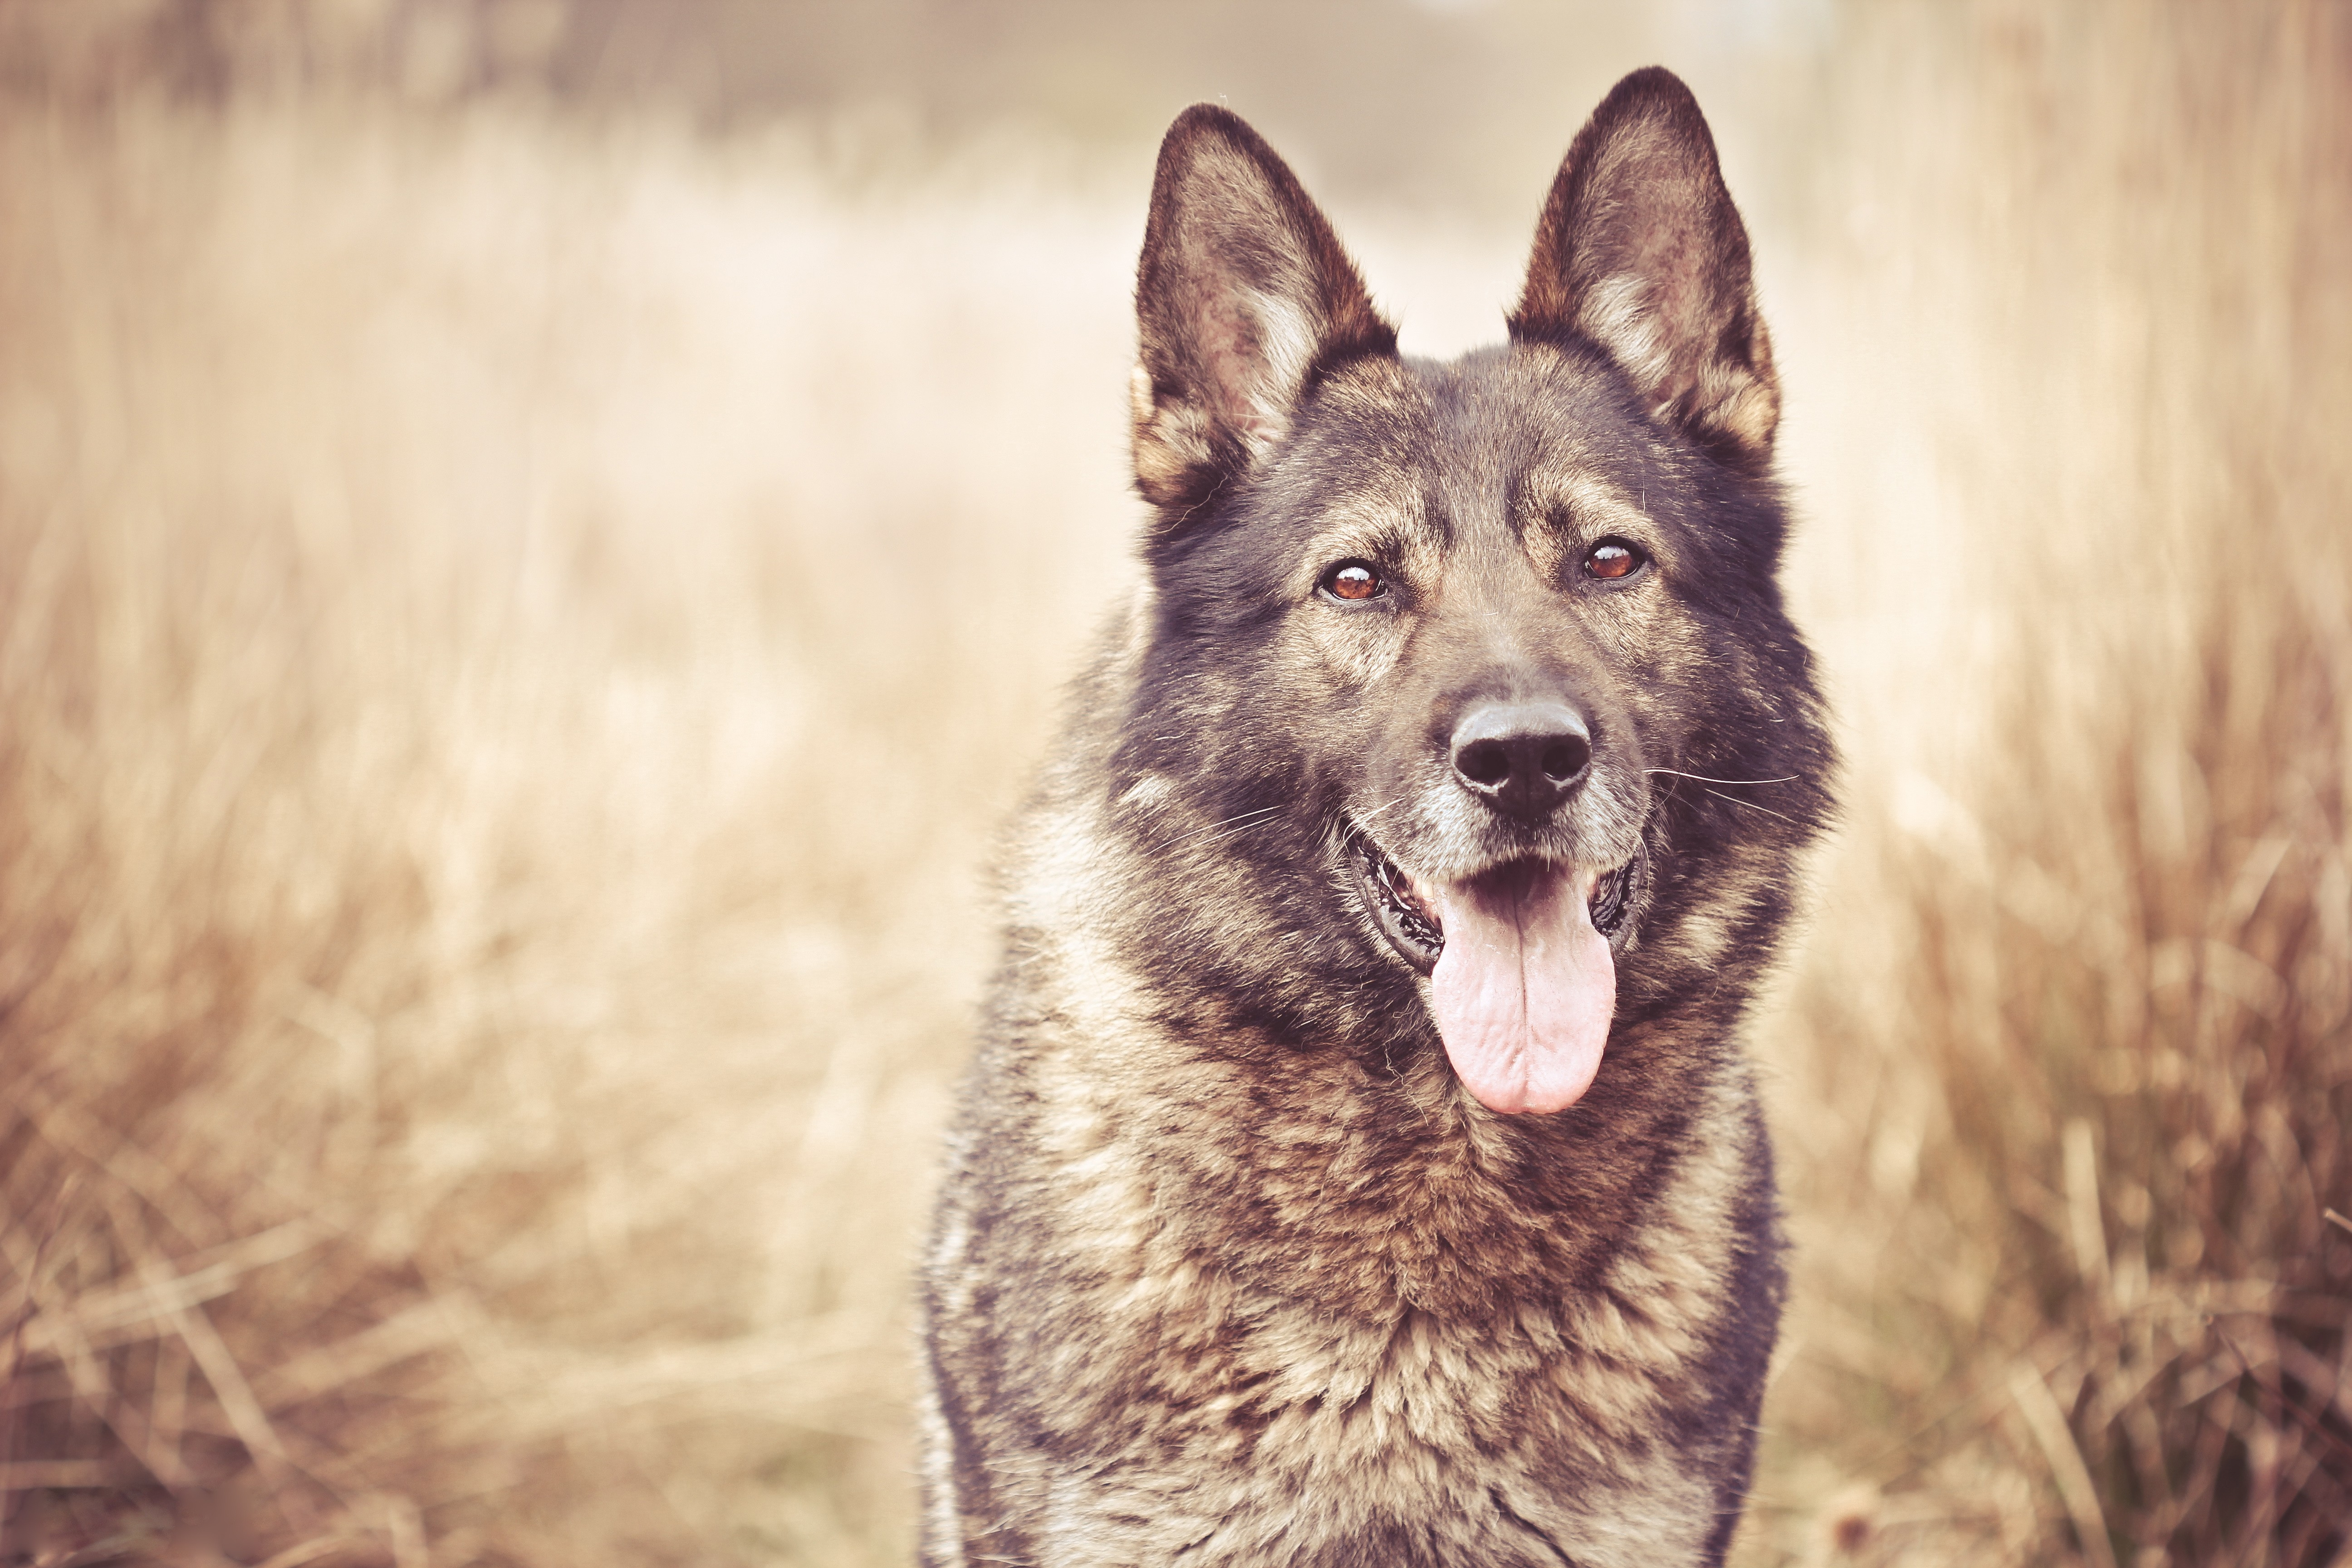 87652 download wallpaper Animals, Grass, Dog, Muzzle, Blur, Smooth screensavers and pictures for free